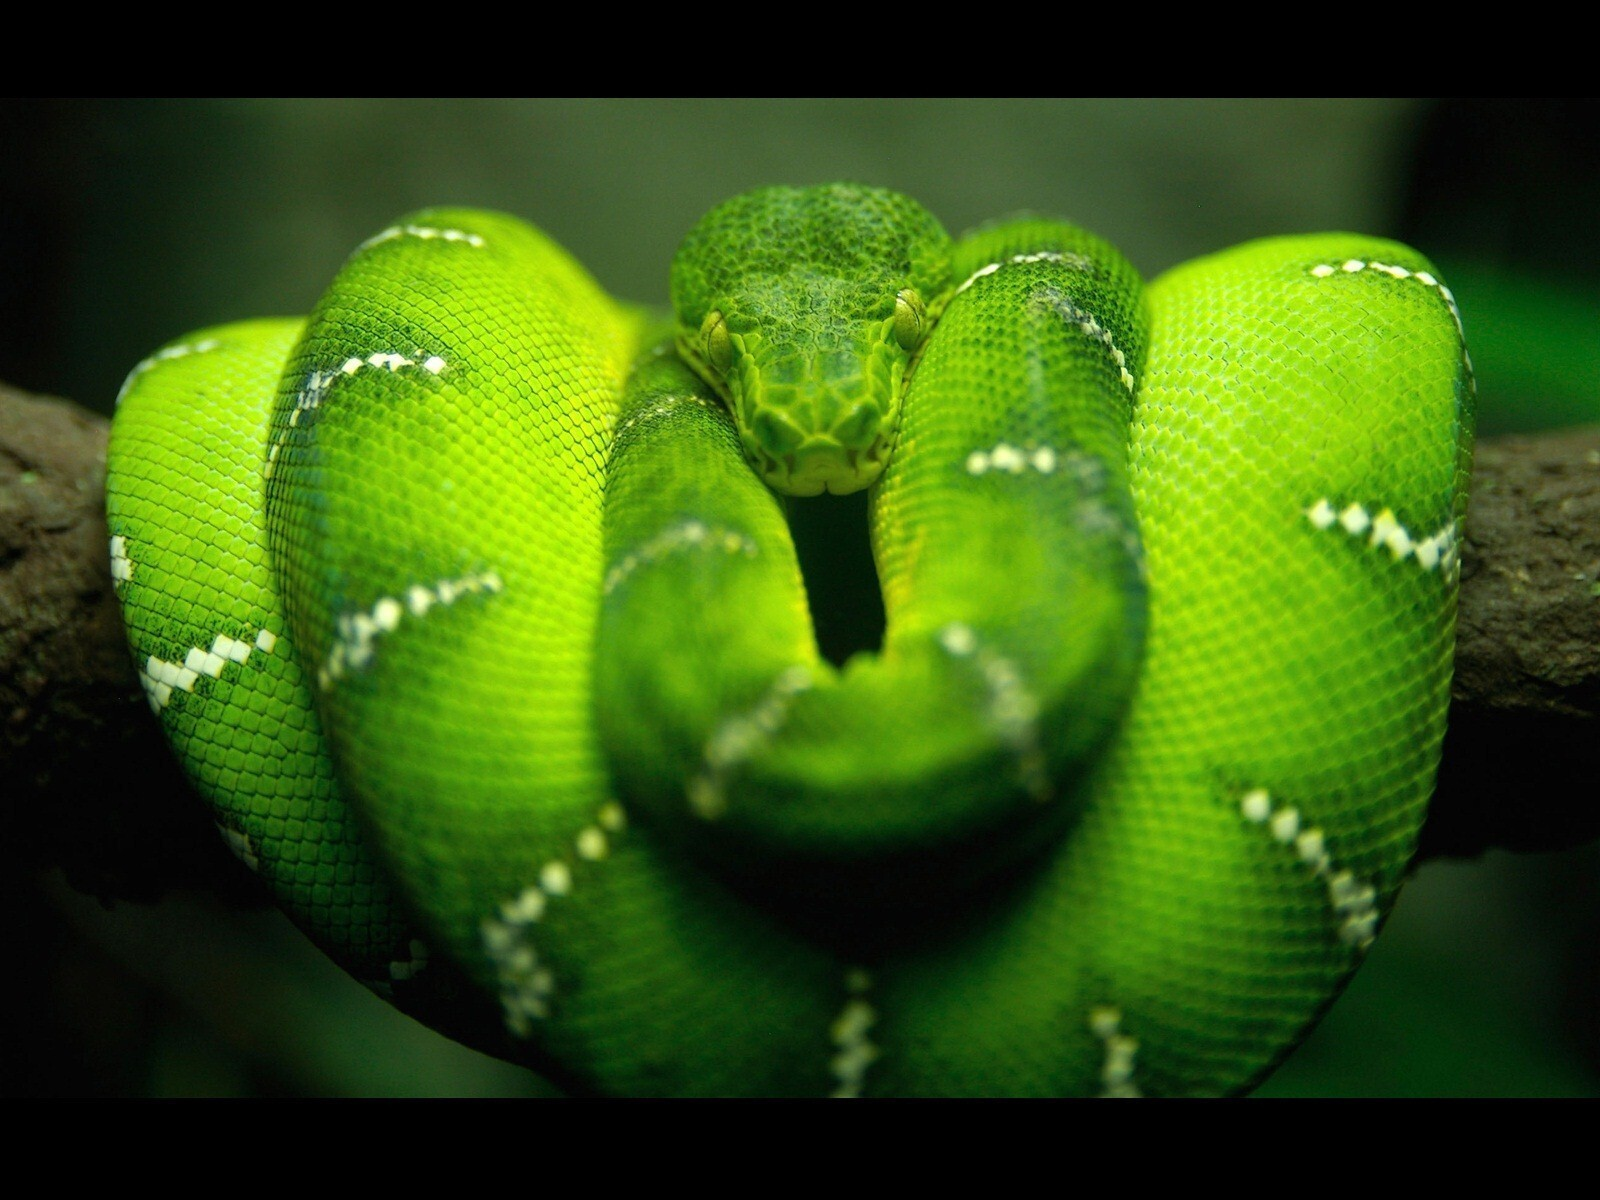 Green snake on tree branch image hd wallpapers - Green snake hd wallpaper ...